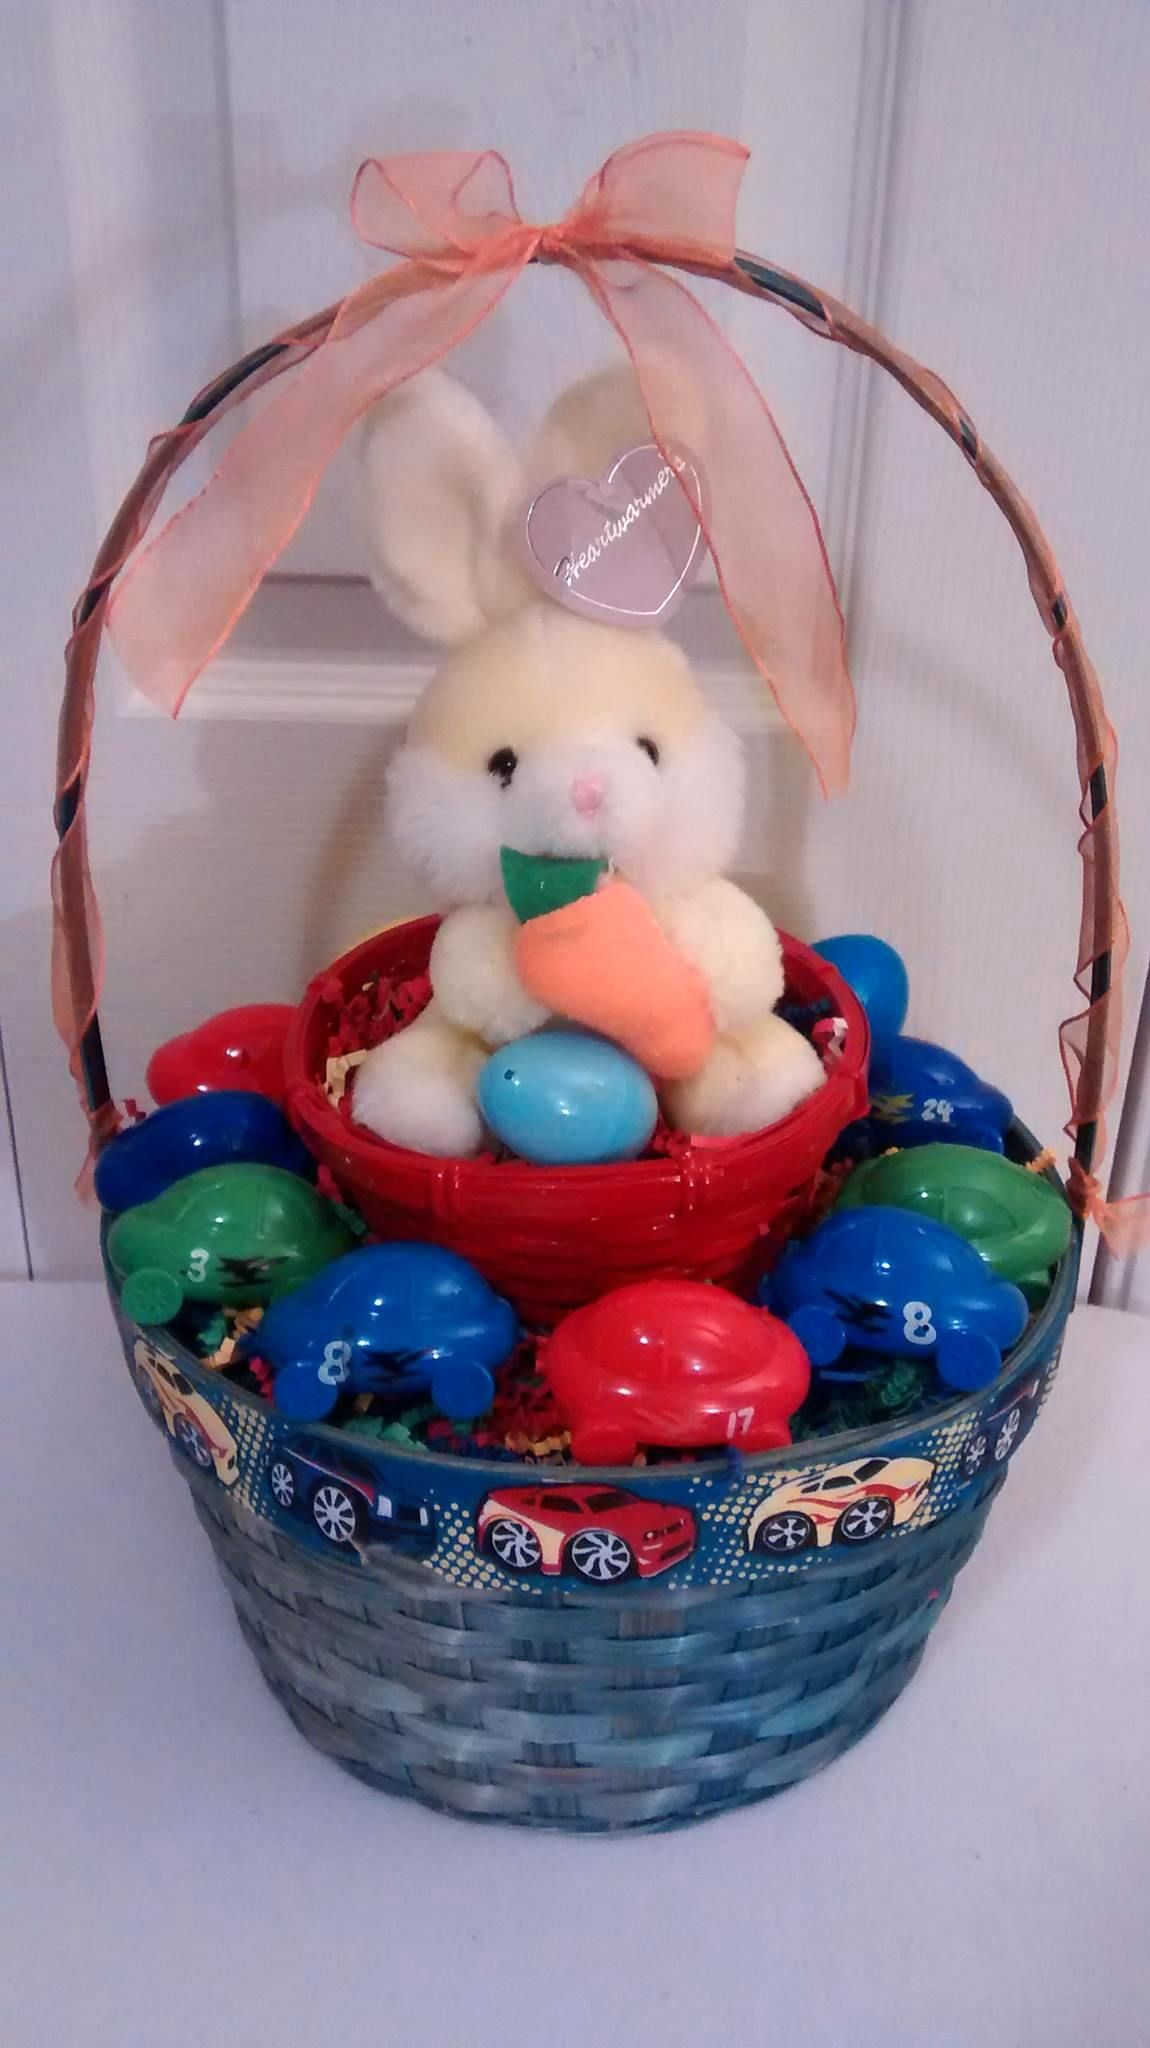 Cars easter bunny gift basket 25 all payments through paypal cars easter bunny gift basket 25 all payments through paypal please message me basket blue negle Choice Image